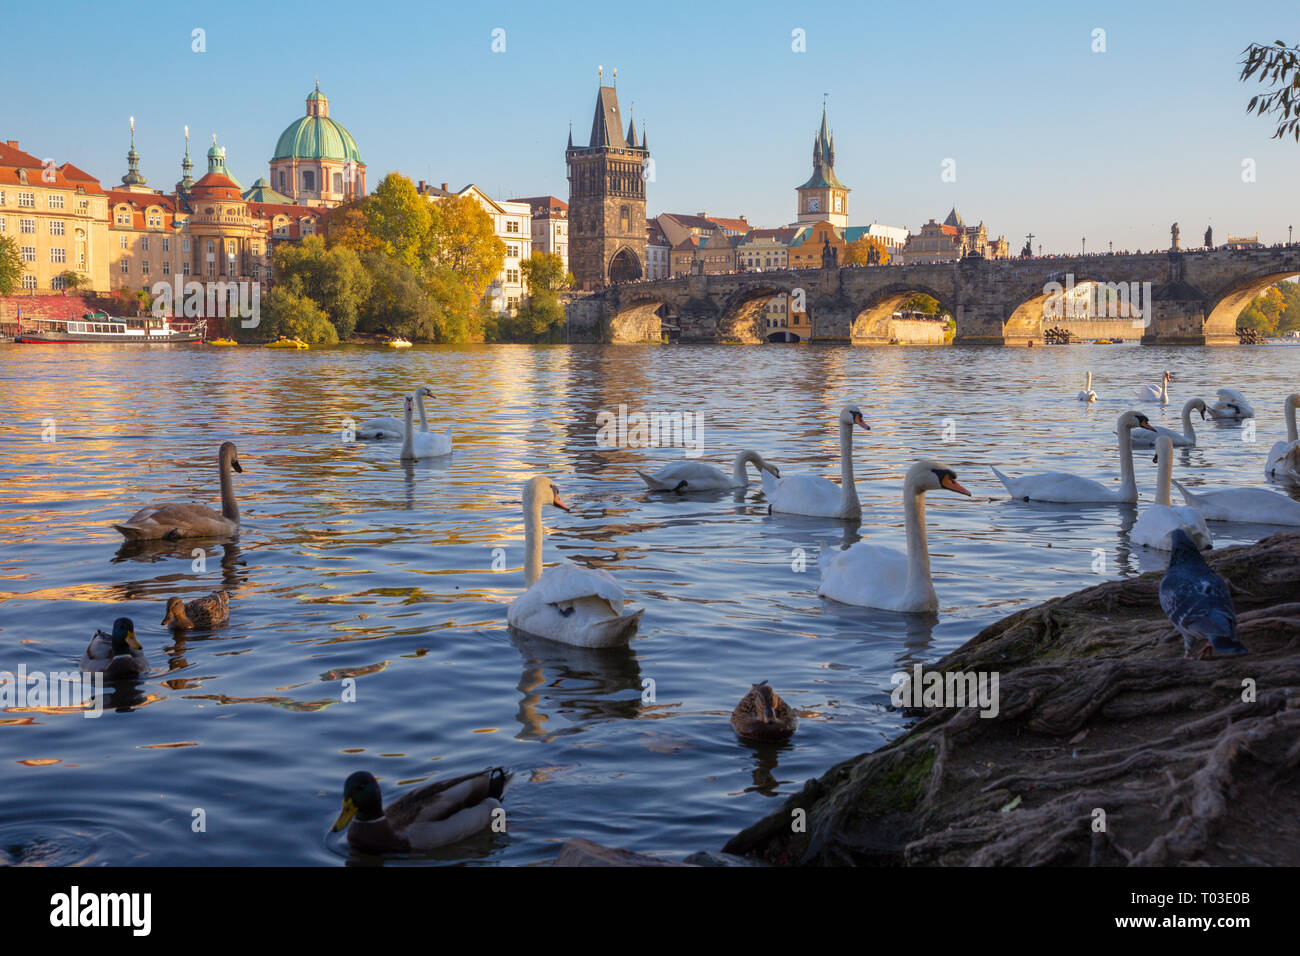 Prague - The Charles bridge and the swans on the Vltava river. - Stock Image